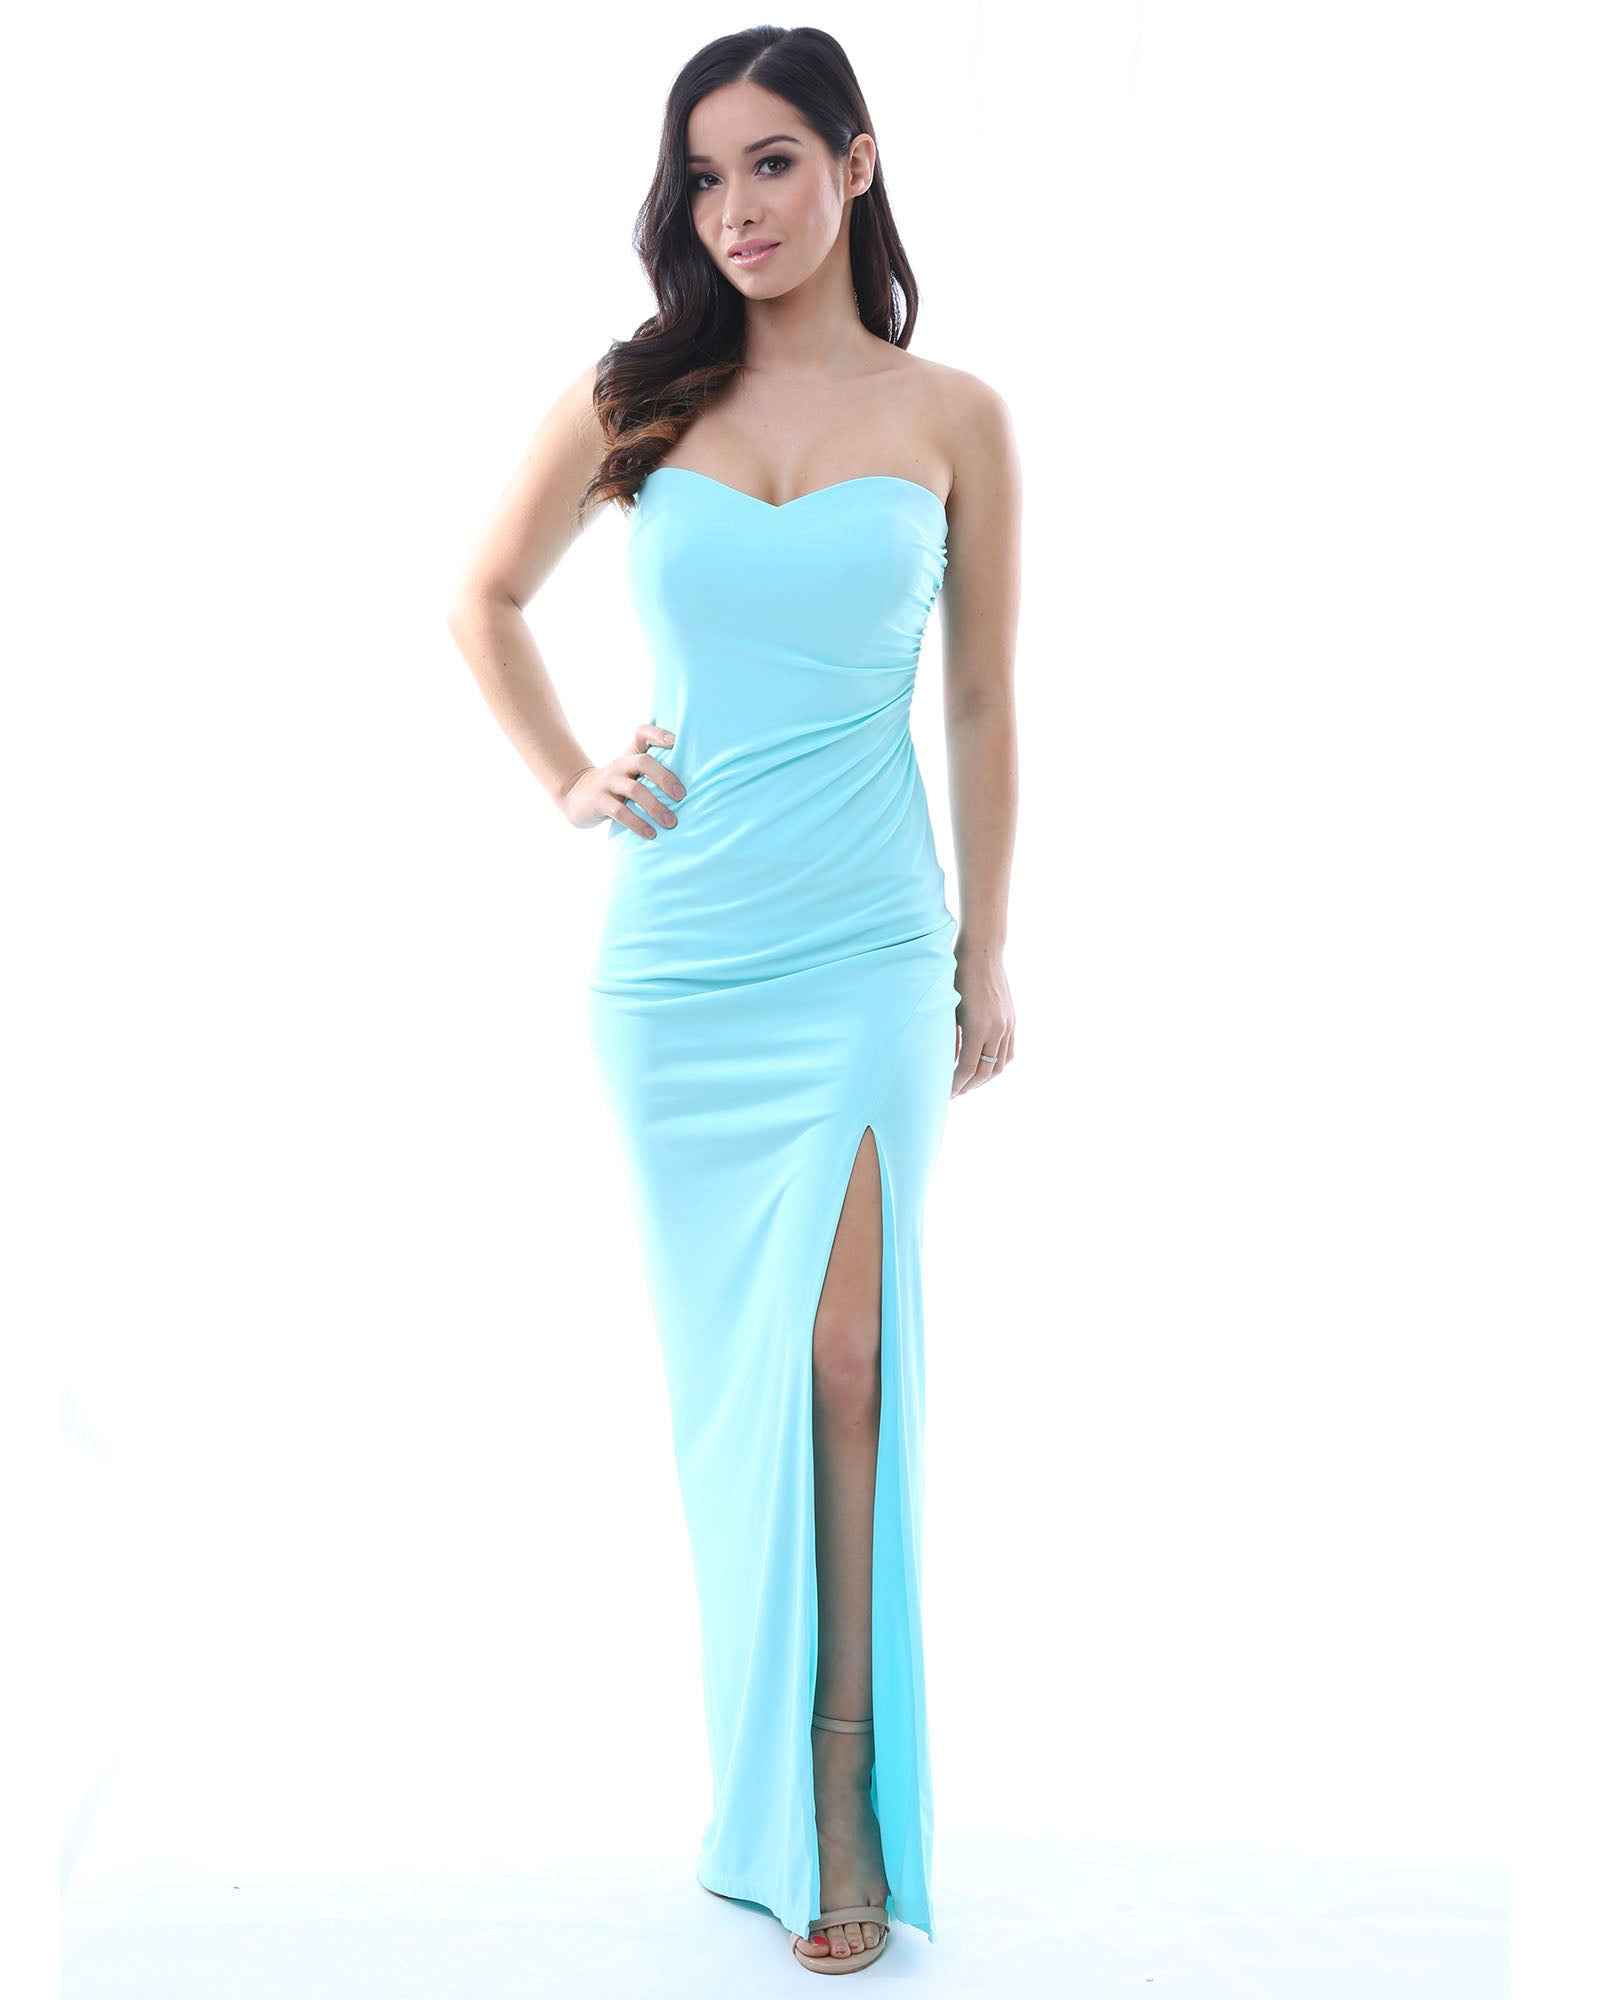 SKIVA strapless evening dress long light blue split gown open back sheath stretch fabric